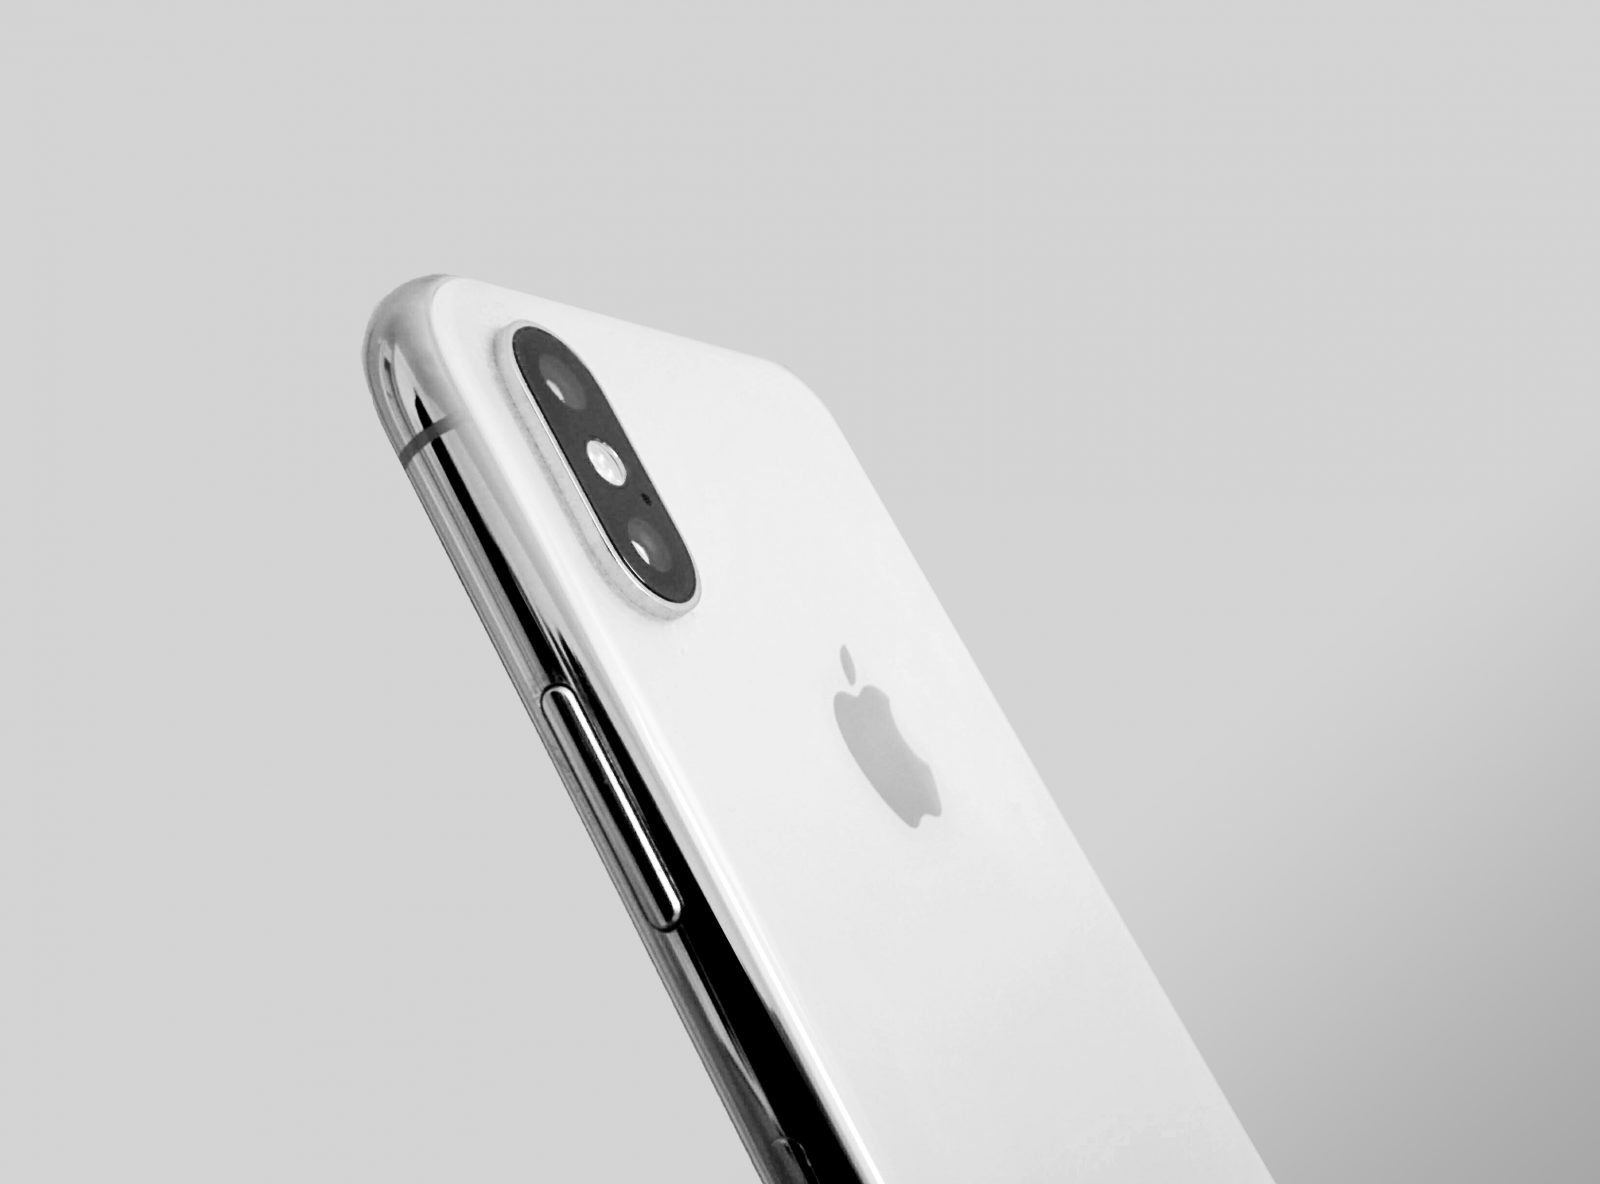 Apple iPhone in the future equipped with ToF camera: what